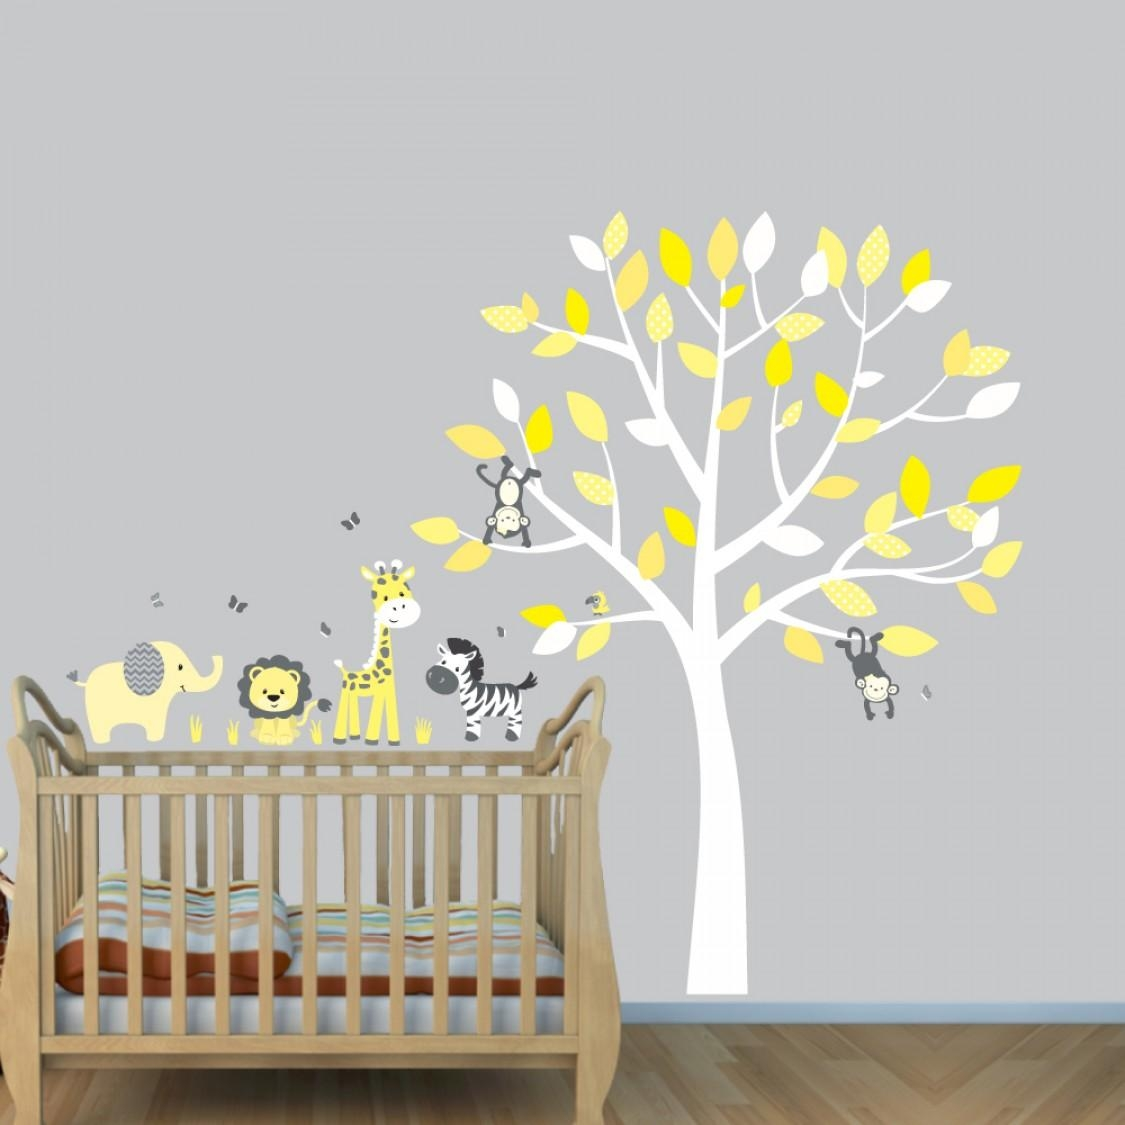 Grey Jungle Wall Stickers With Elephant Decals For Yellow Nursery Throughout Gray And Yellow Wall Art (Image 5 of 20)